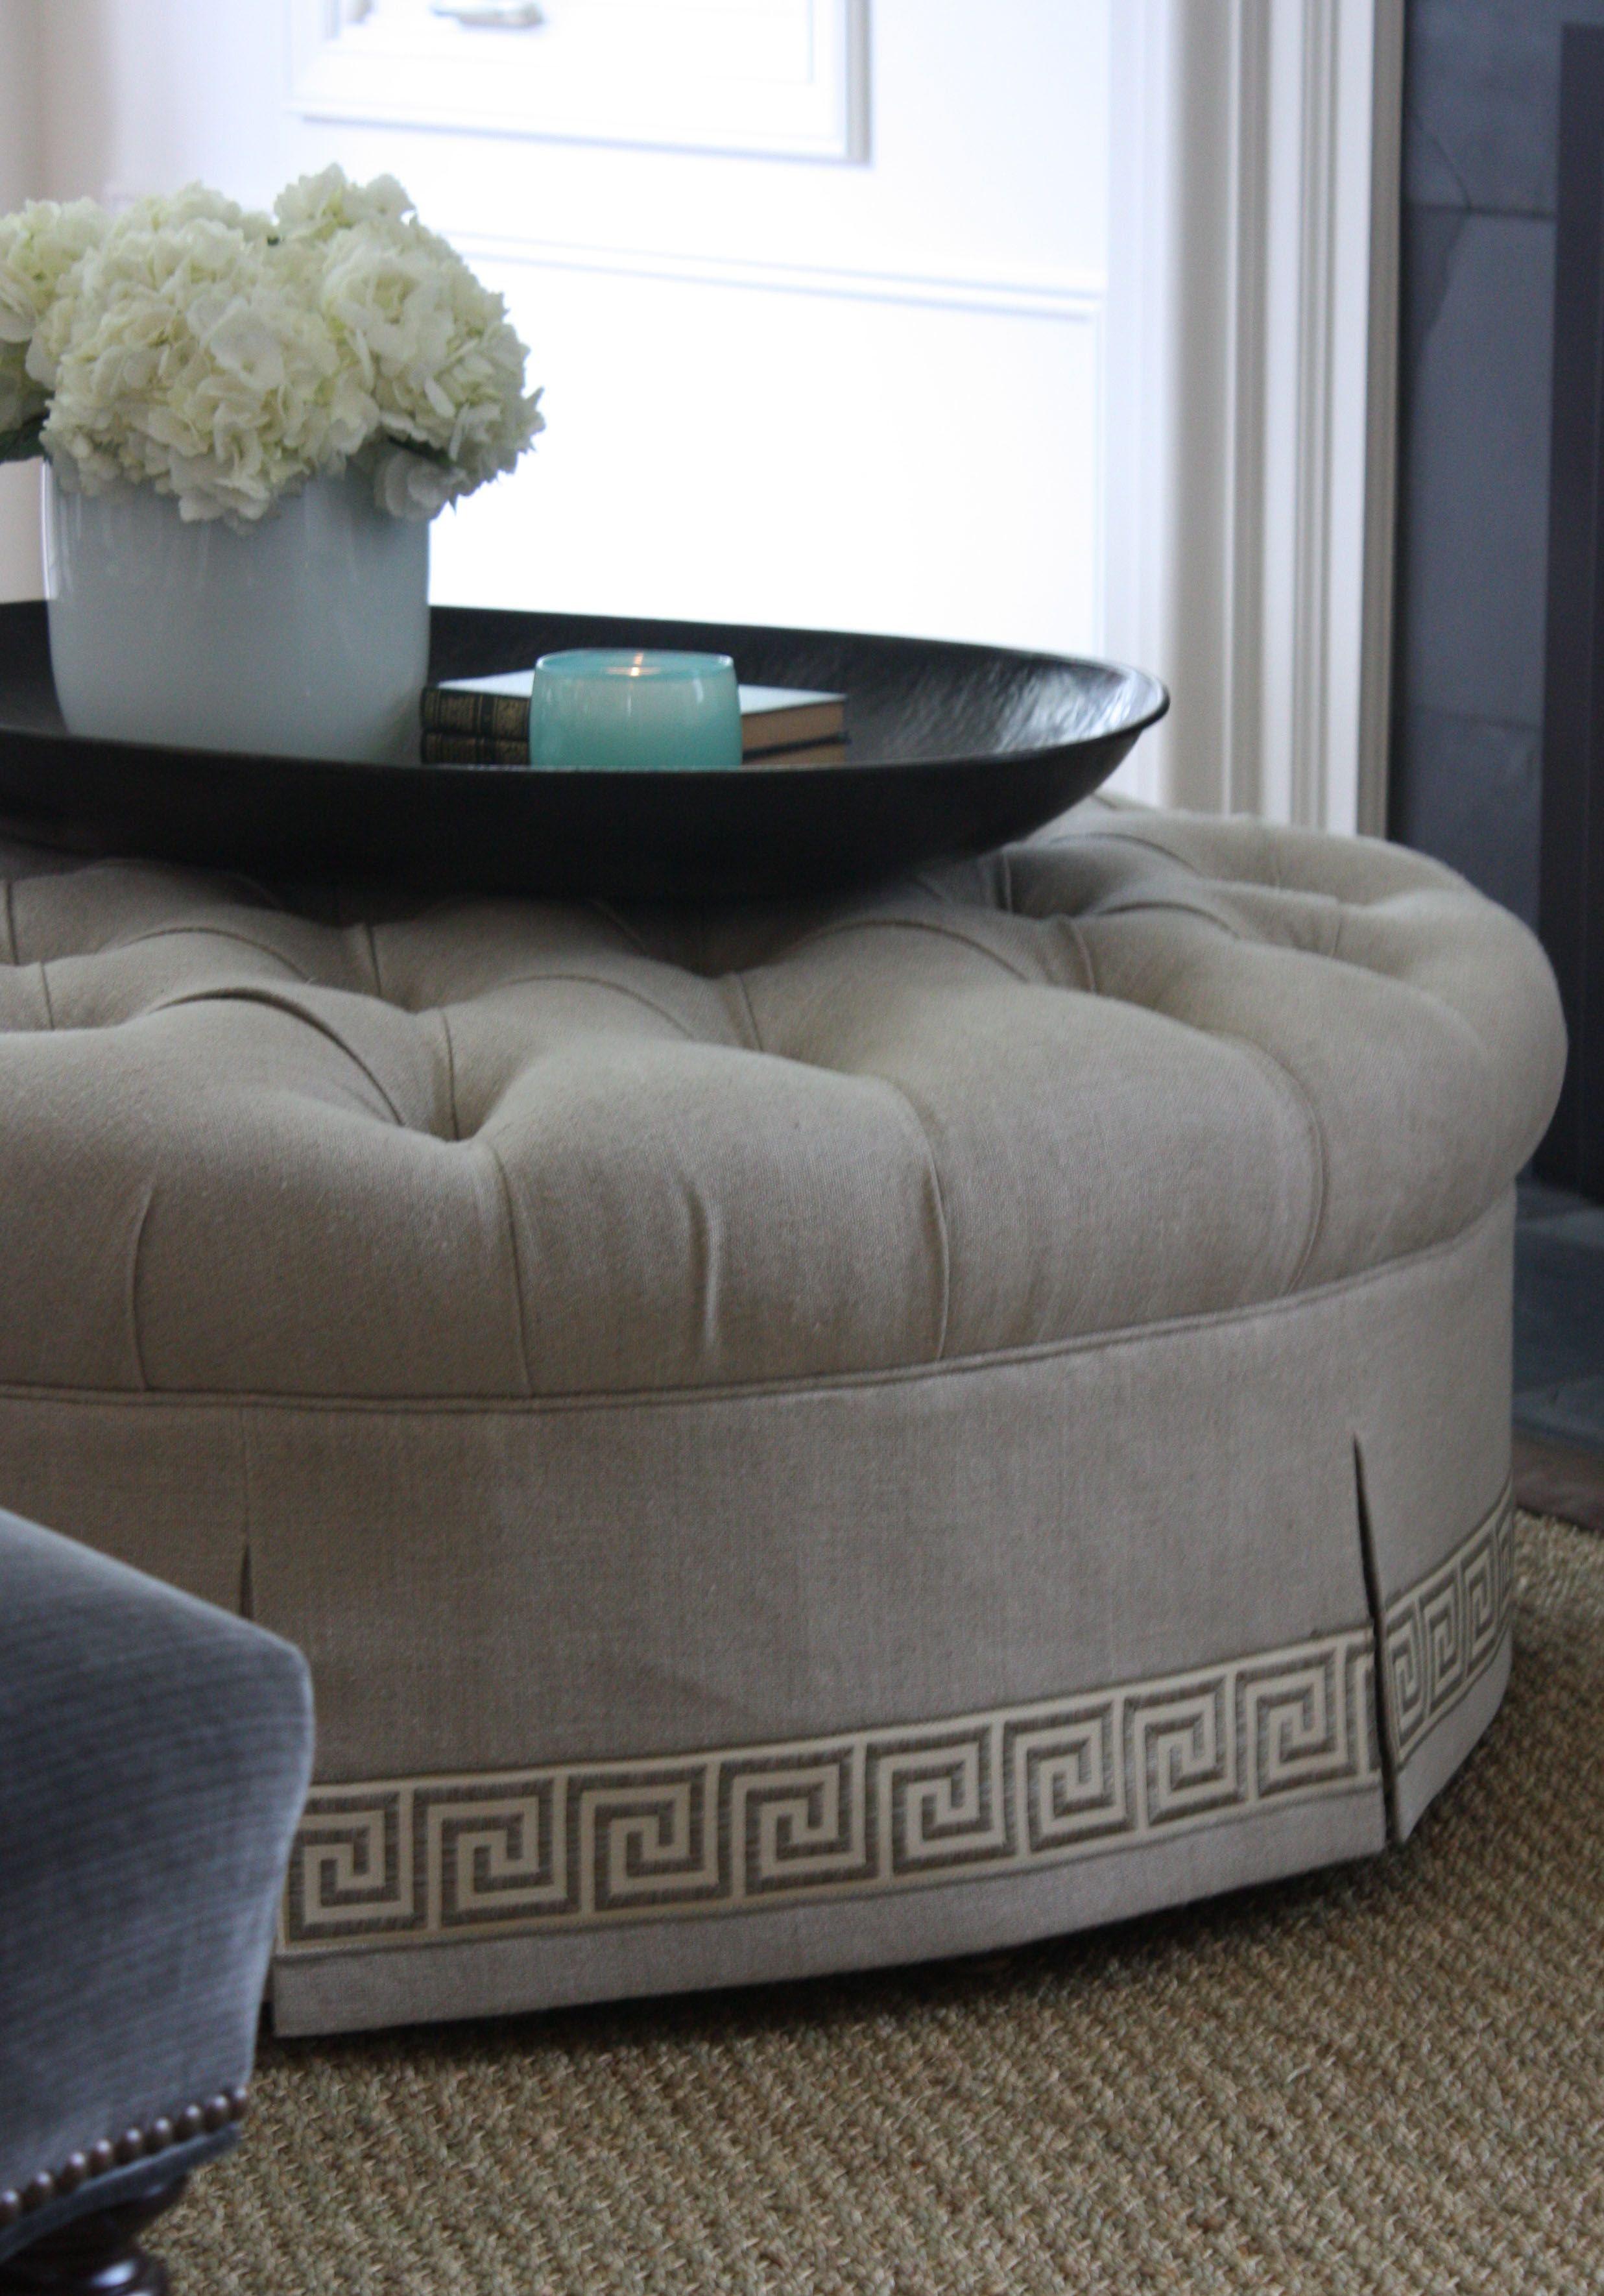 Marianne Simon Design With Images Home Decor Round Ottoman